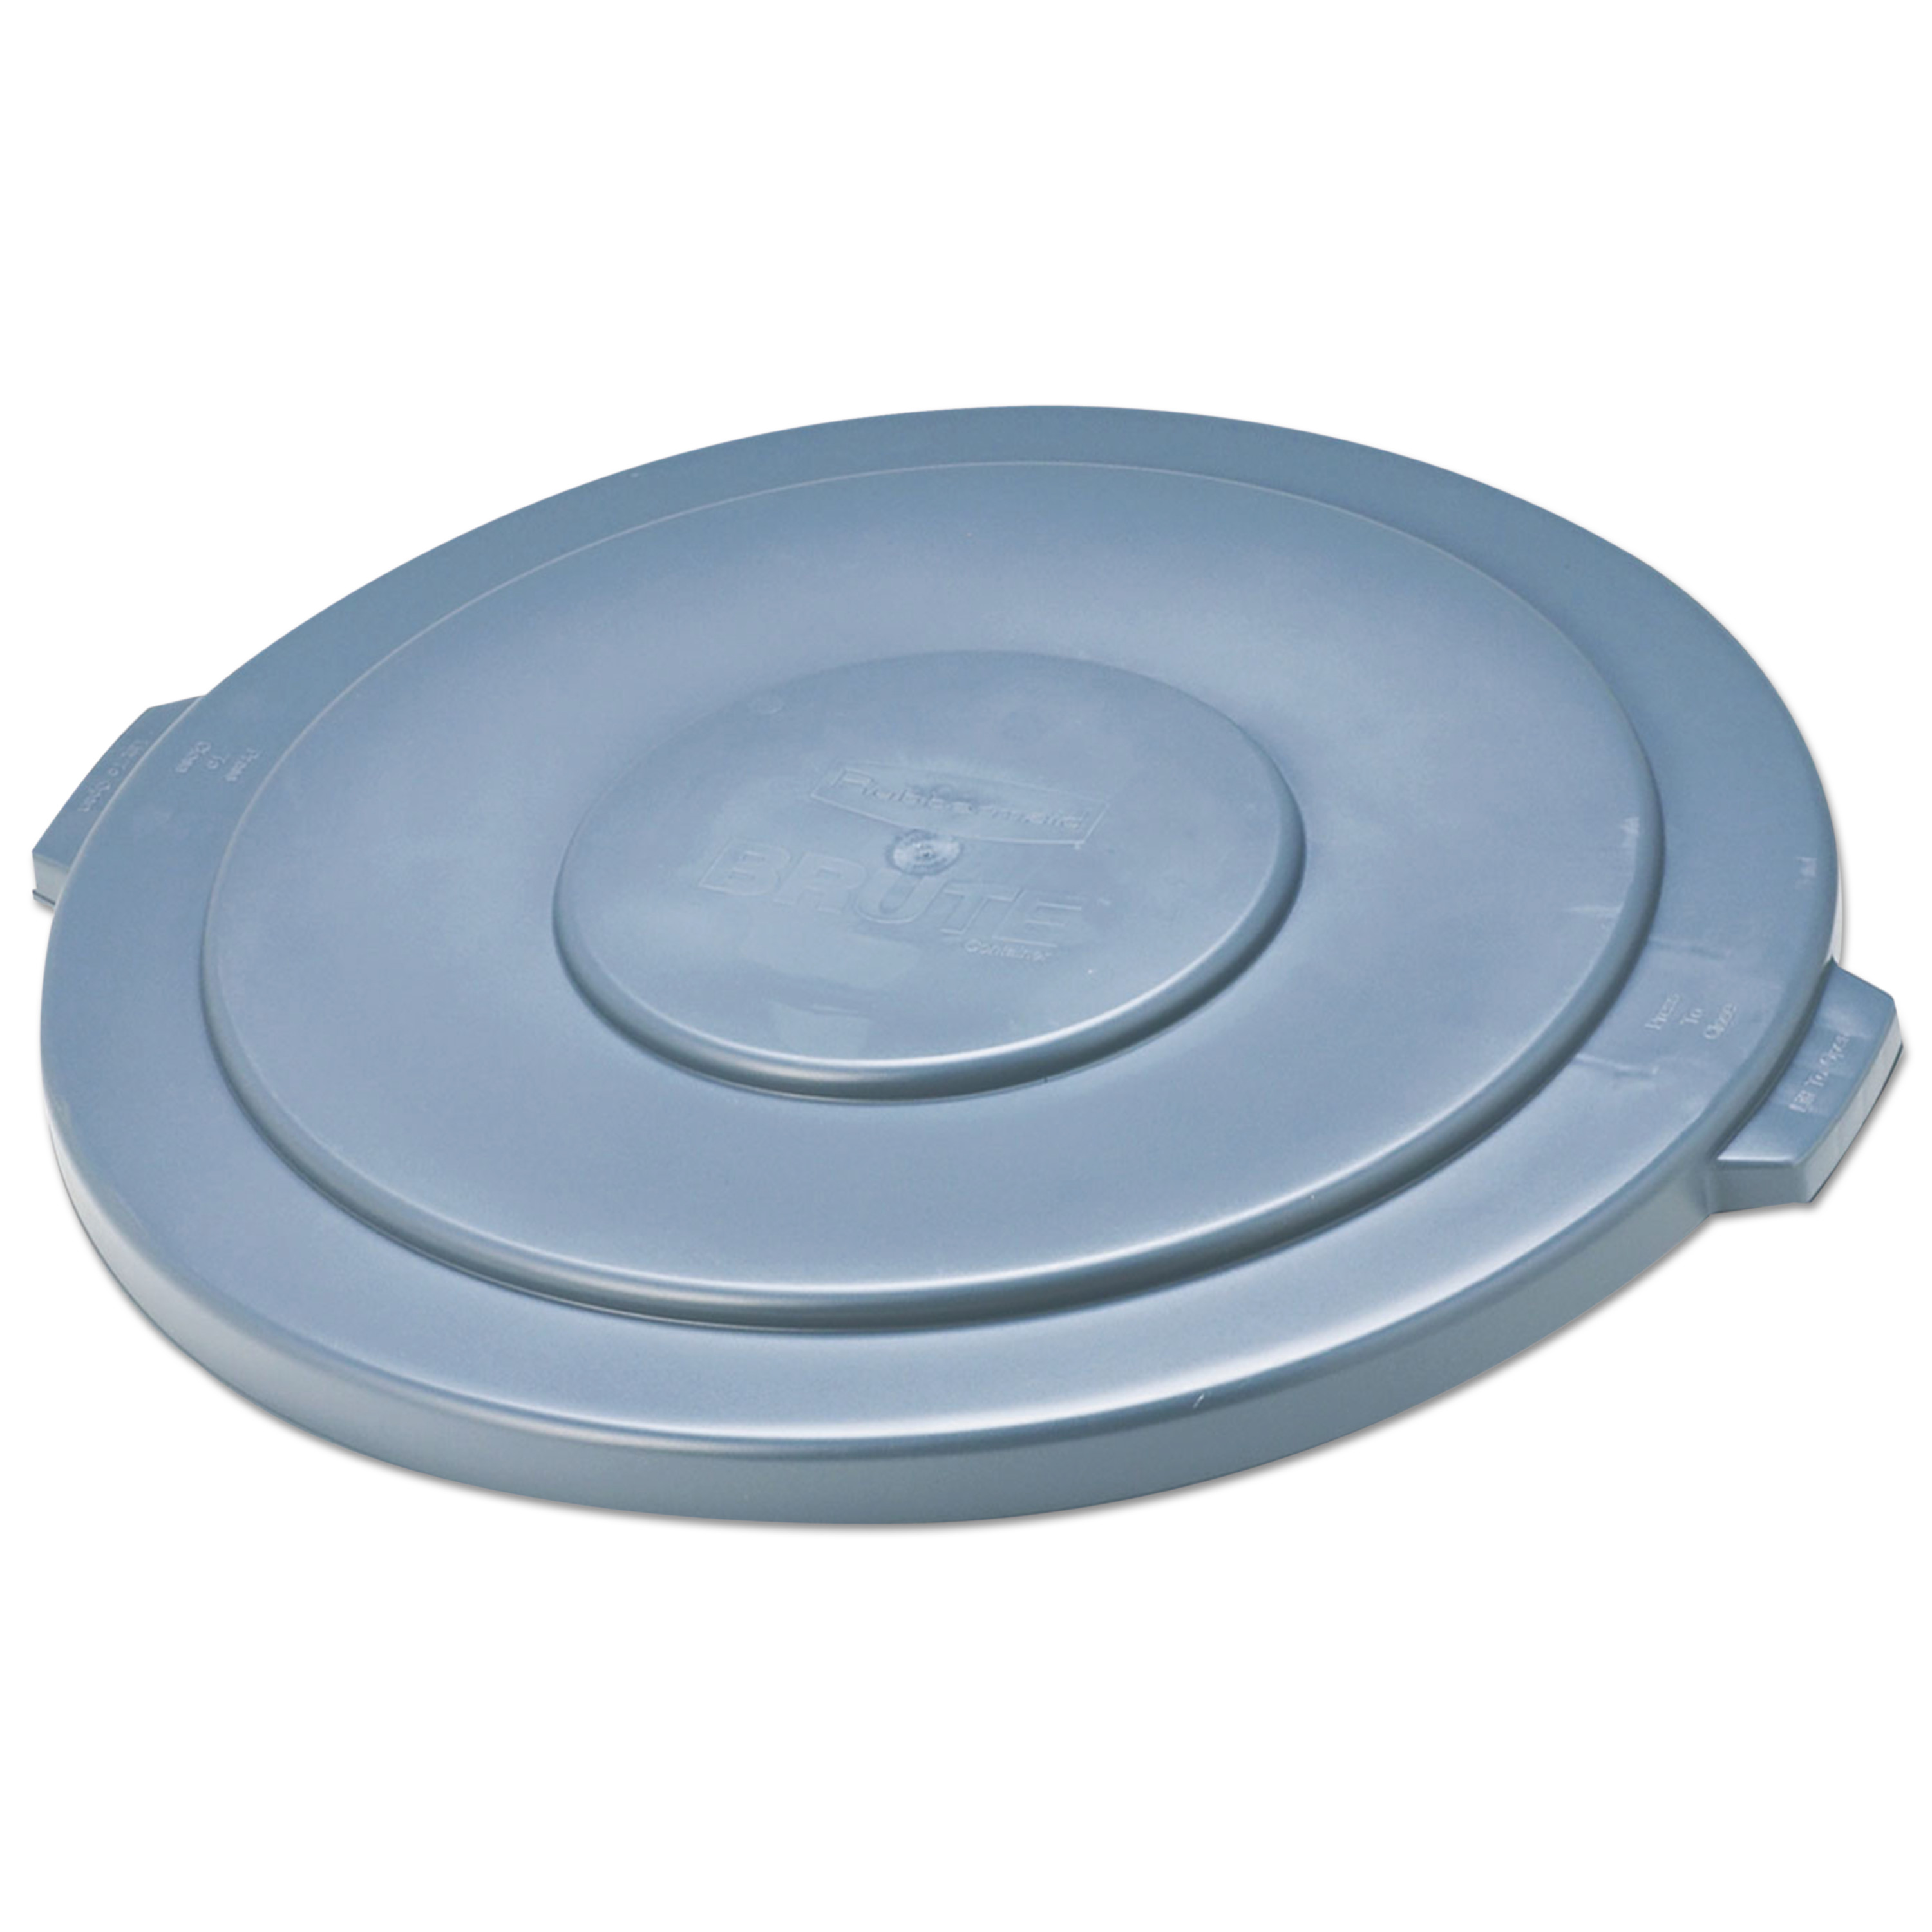 """Rubbermaid Commercial Round Flat Top Lid, for 55-Gallon Round Brute Containers, 26 3/4"""", dia., Gray"""